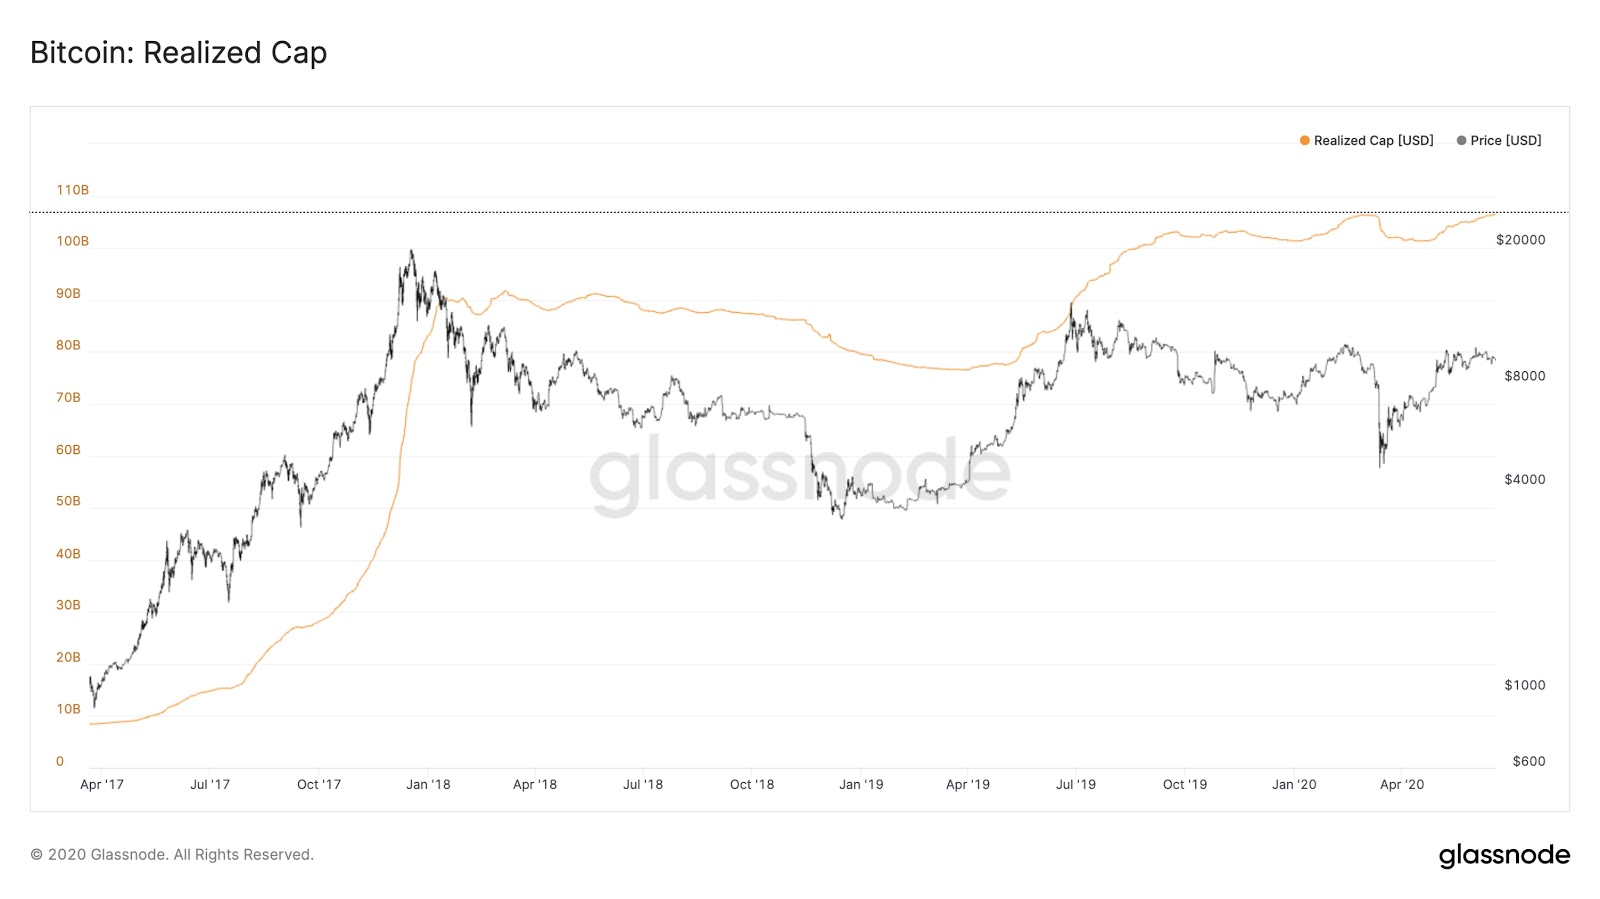 The realized capitalization of Bitcoin reaches a new level. Source: Glassnode